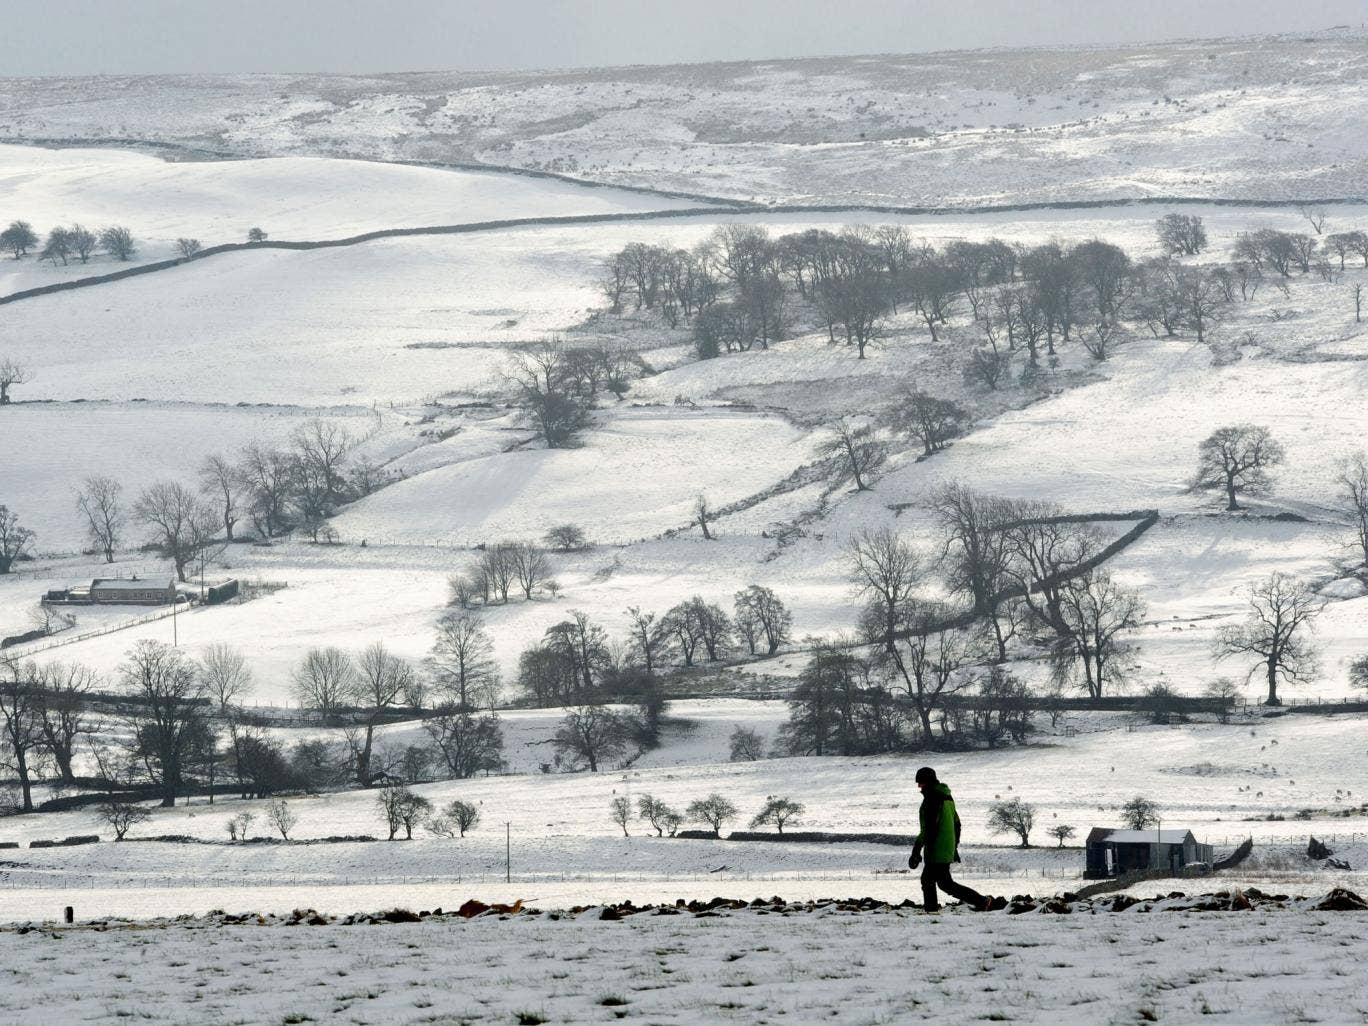 A walker takes a path along the gallops at Middleham, North Yorkshire